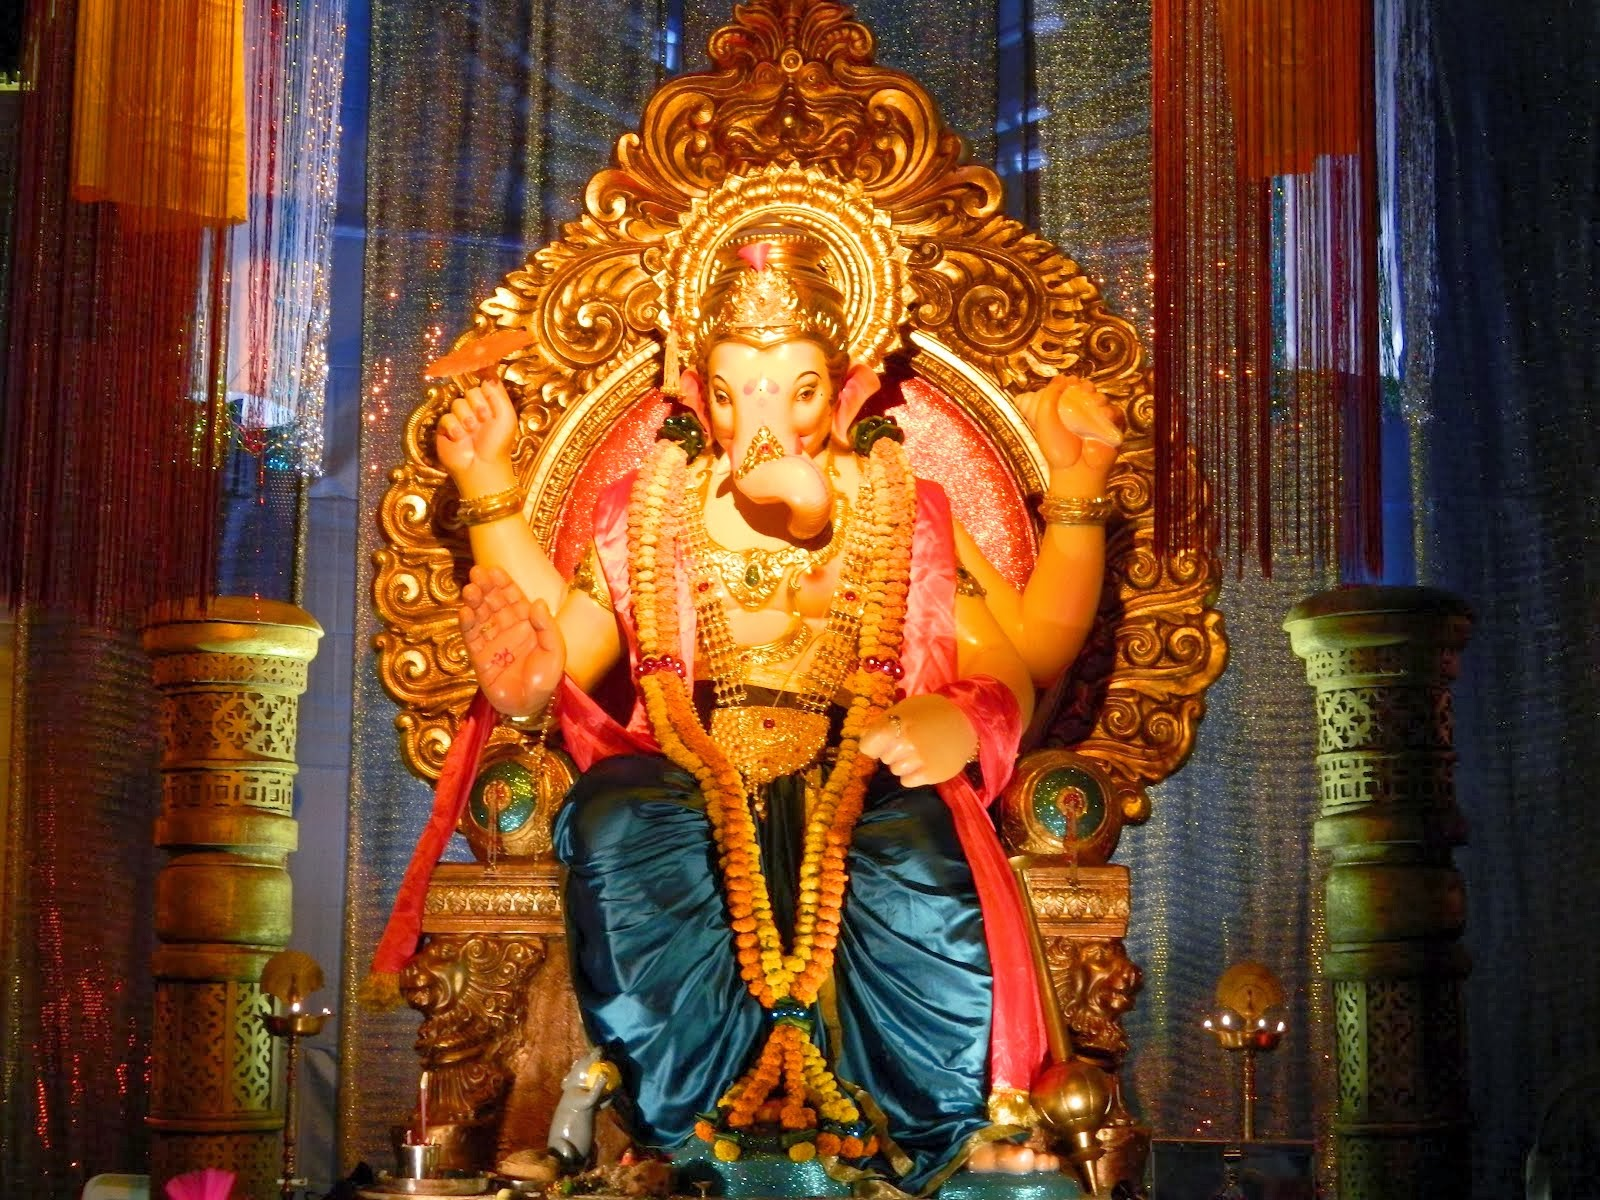 Lord Ganesha Latest Hd Images Free Downloads: Hindu God Wallpapers Download